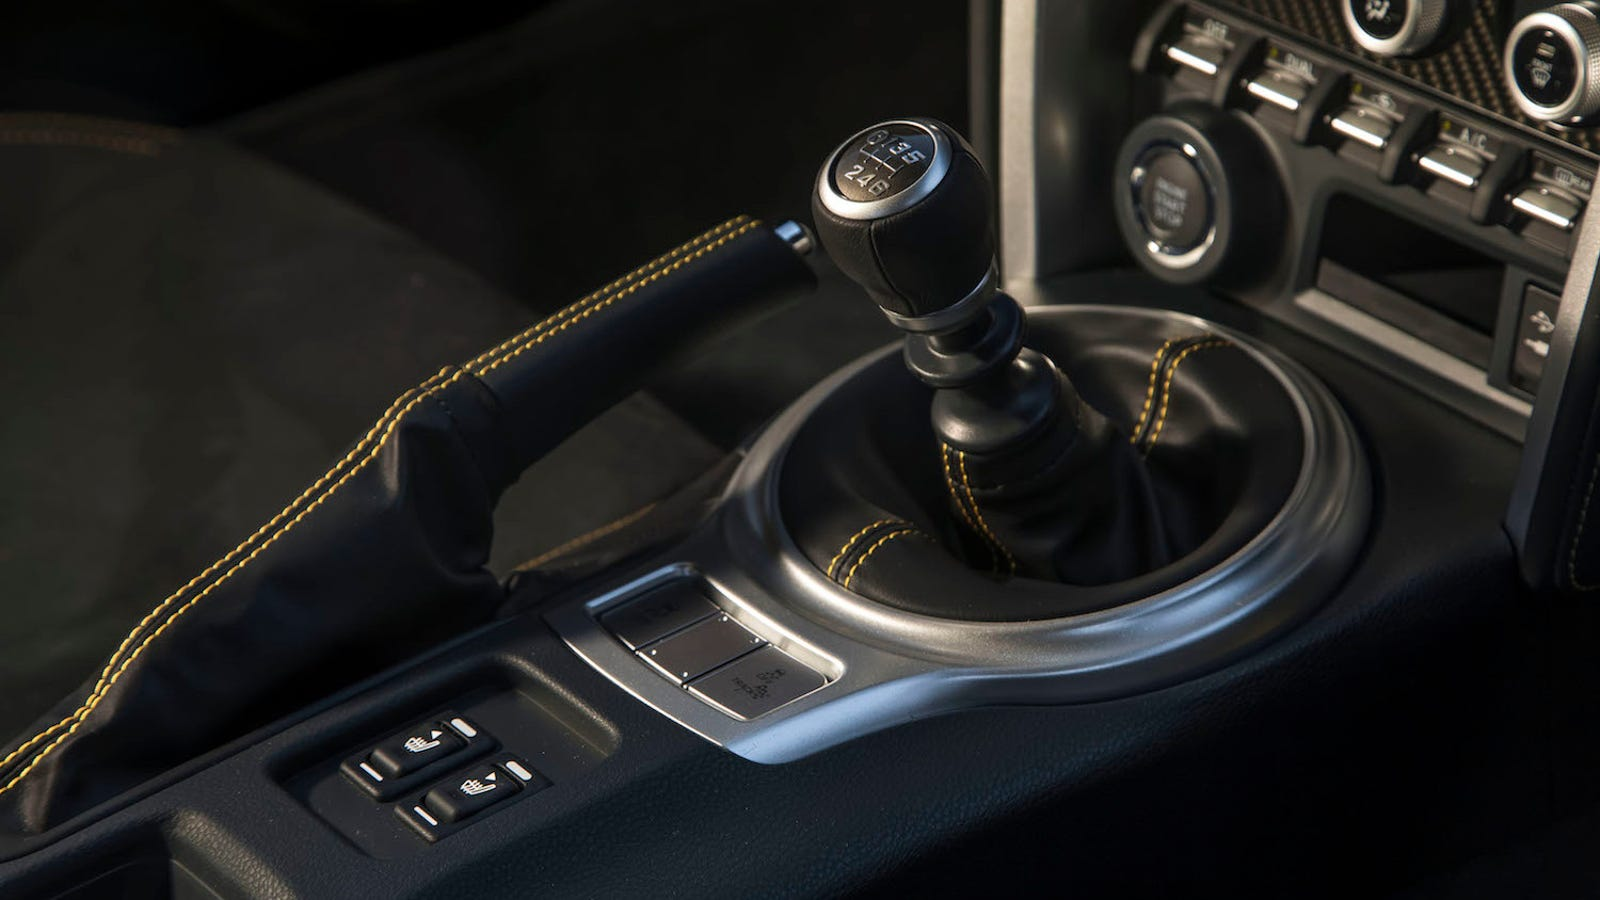 Perhaps The Future Of Subaru's Manual Transmission Isn't So Bleak After All